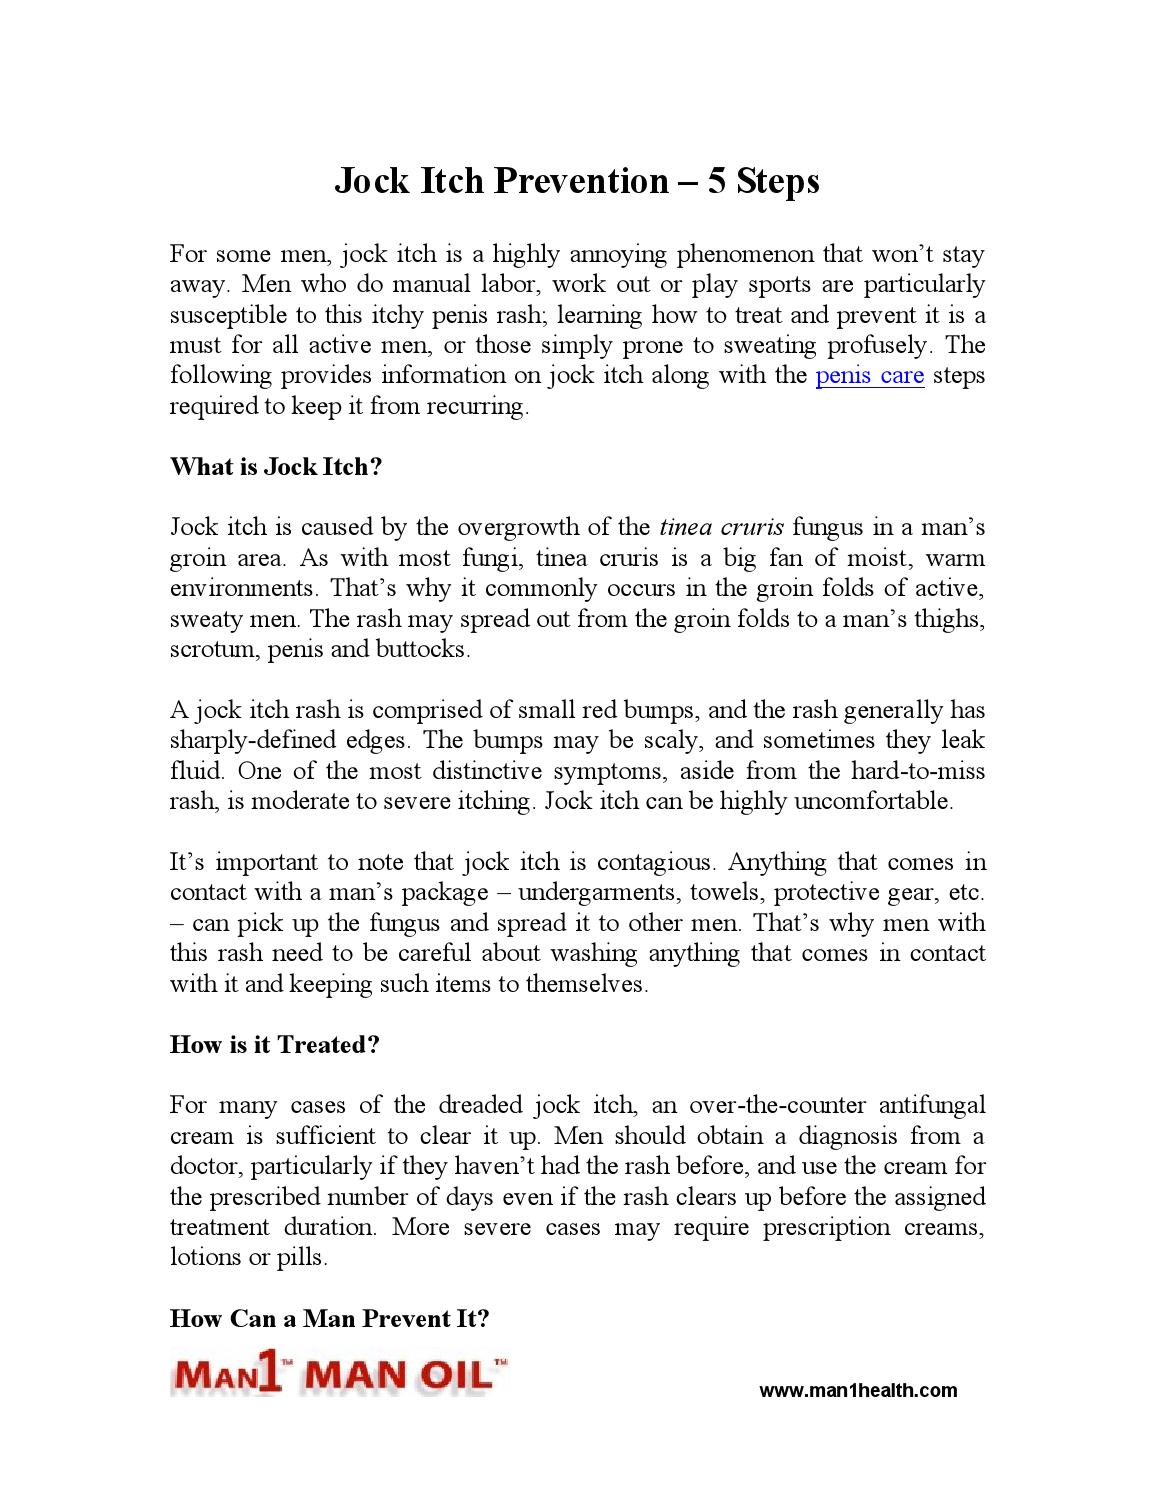 Jock itch prevention – 5 steps by man1health - issuu